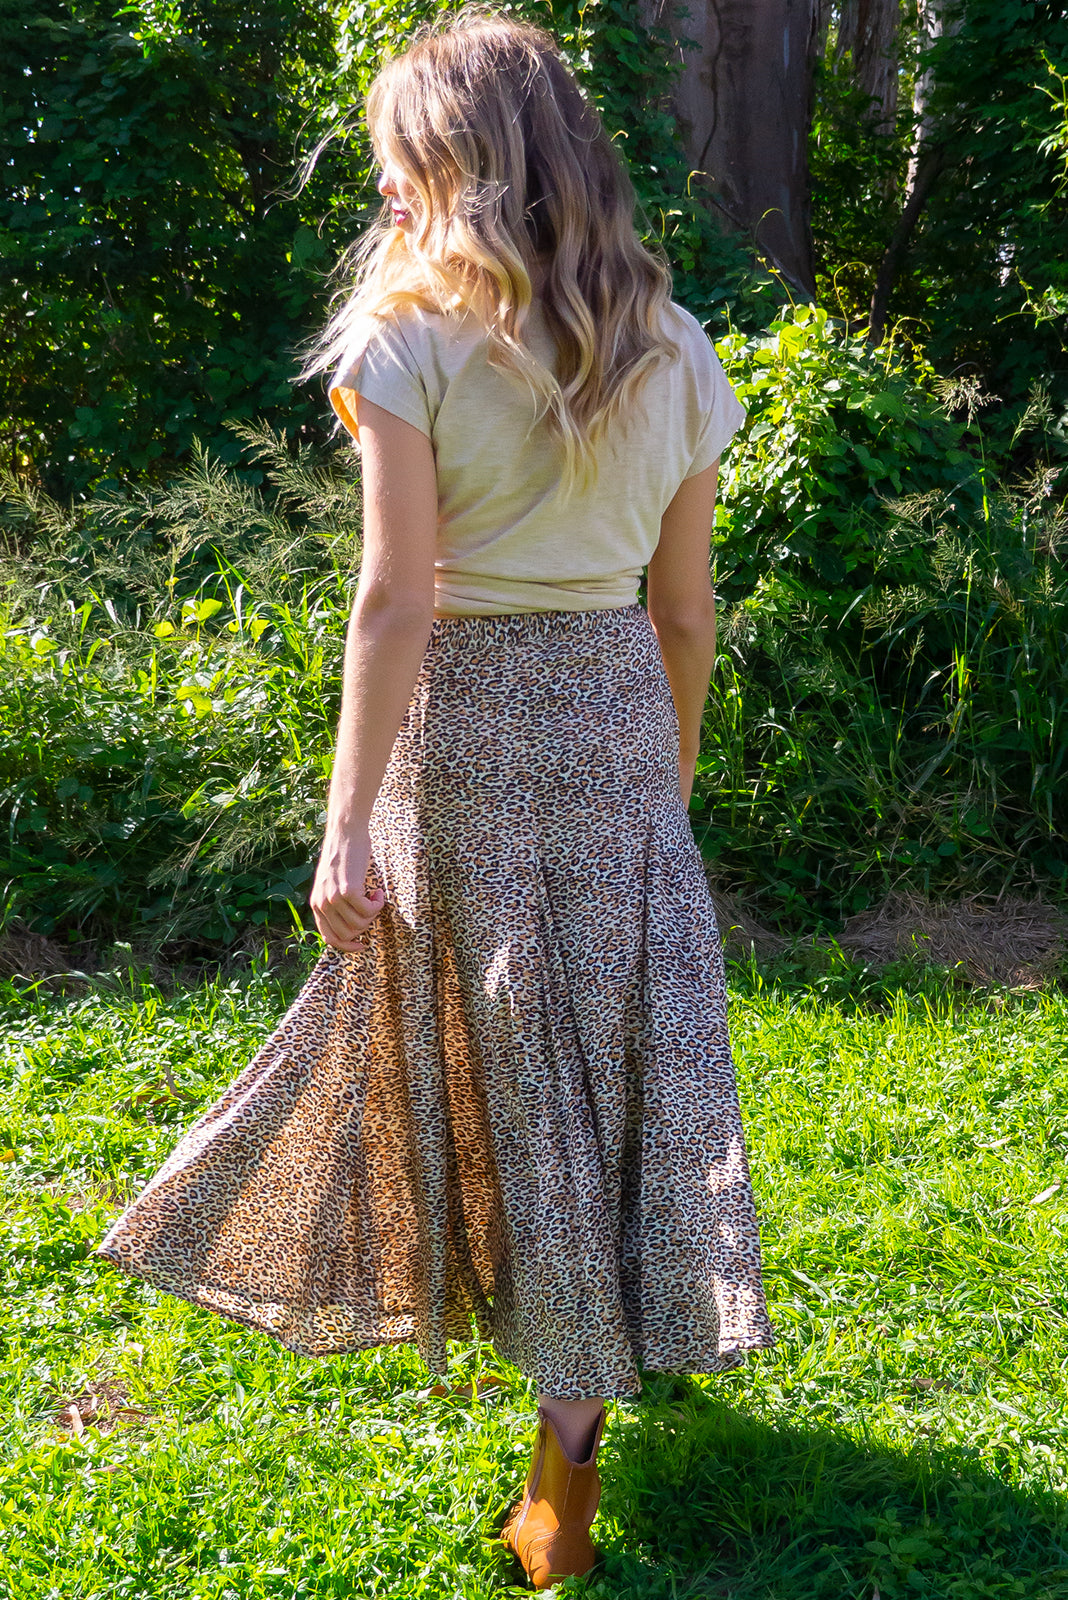 Avalon Hakuna Midi Skirt has an elastic waistband is fitted over the hips and waist but features full fishtail inserts for a full soft finish at the hemline. It comes in a woven non stretch 100% rayon with and features a leopard skin print design